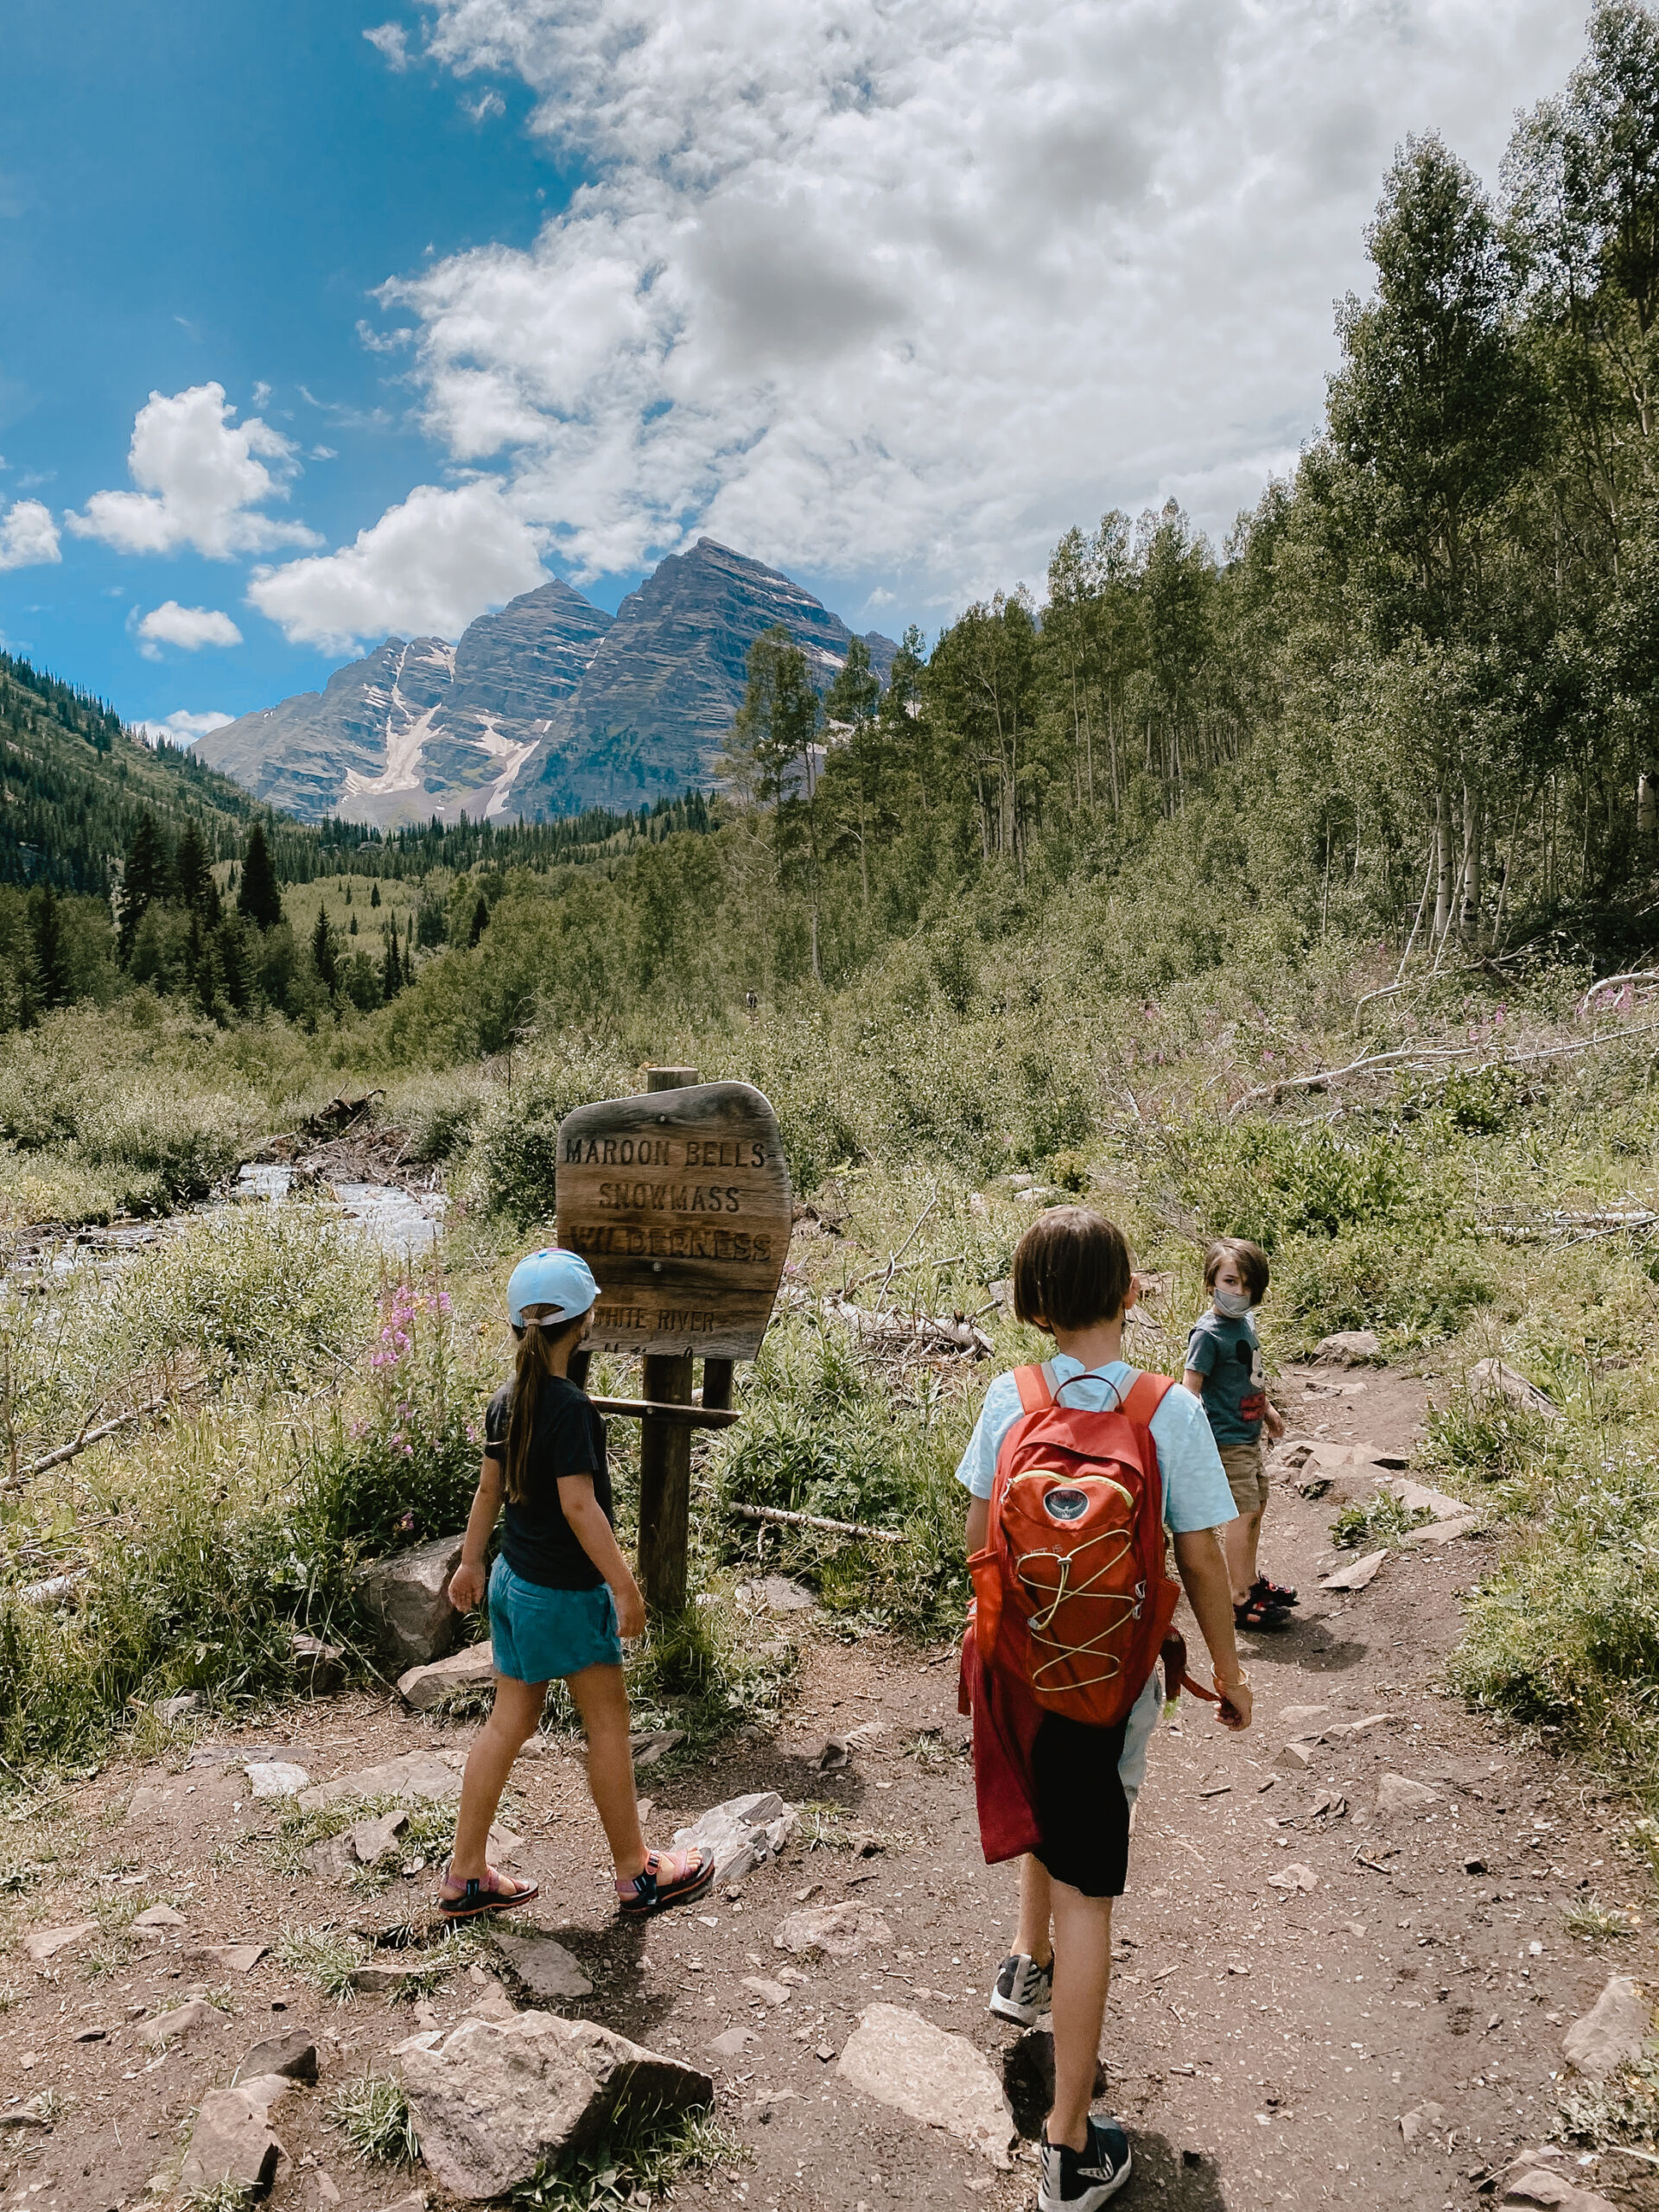 taking the scenic loop at maroon bells. #familytravel #hiking #getoutside